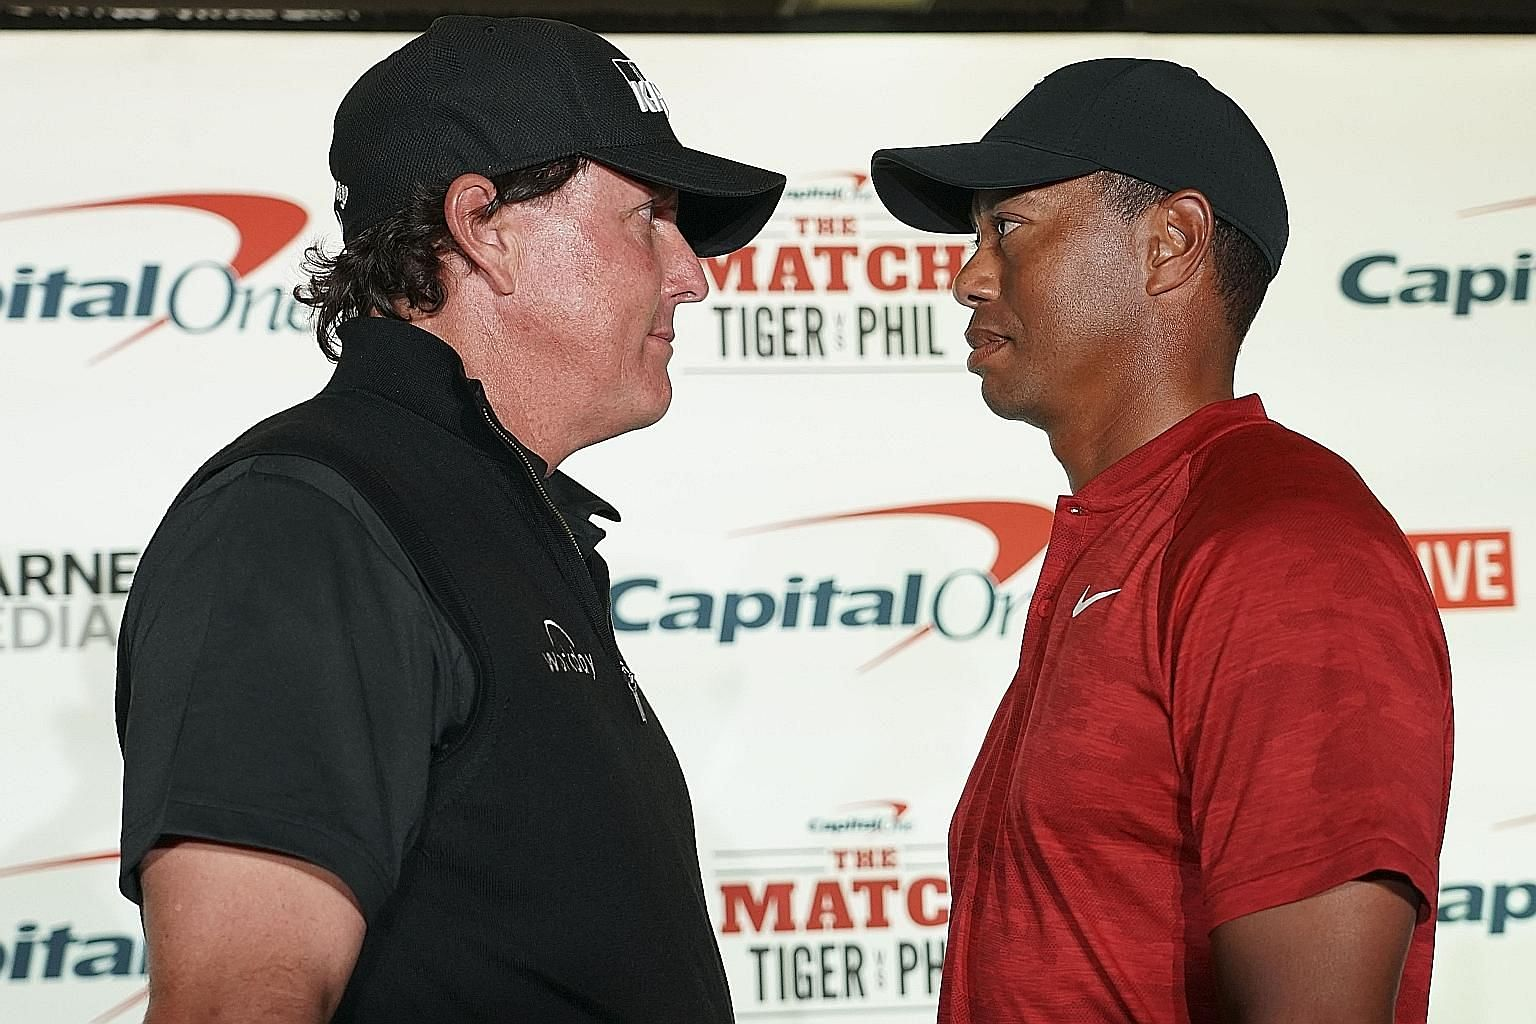 """Phil Mickelson will take on Tiger Woods today in an 18-hole matchplay event dubbed """"The Match"""" at Shadow Creek in Las Vegas. The winner of the exhibition game will take home US$9 million."""